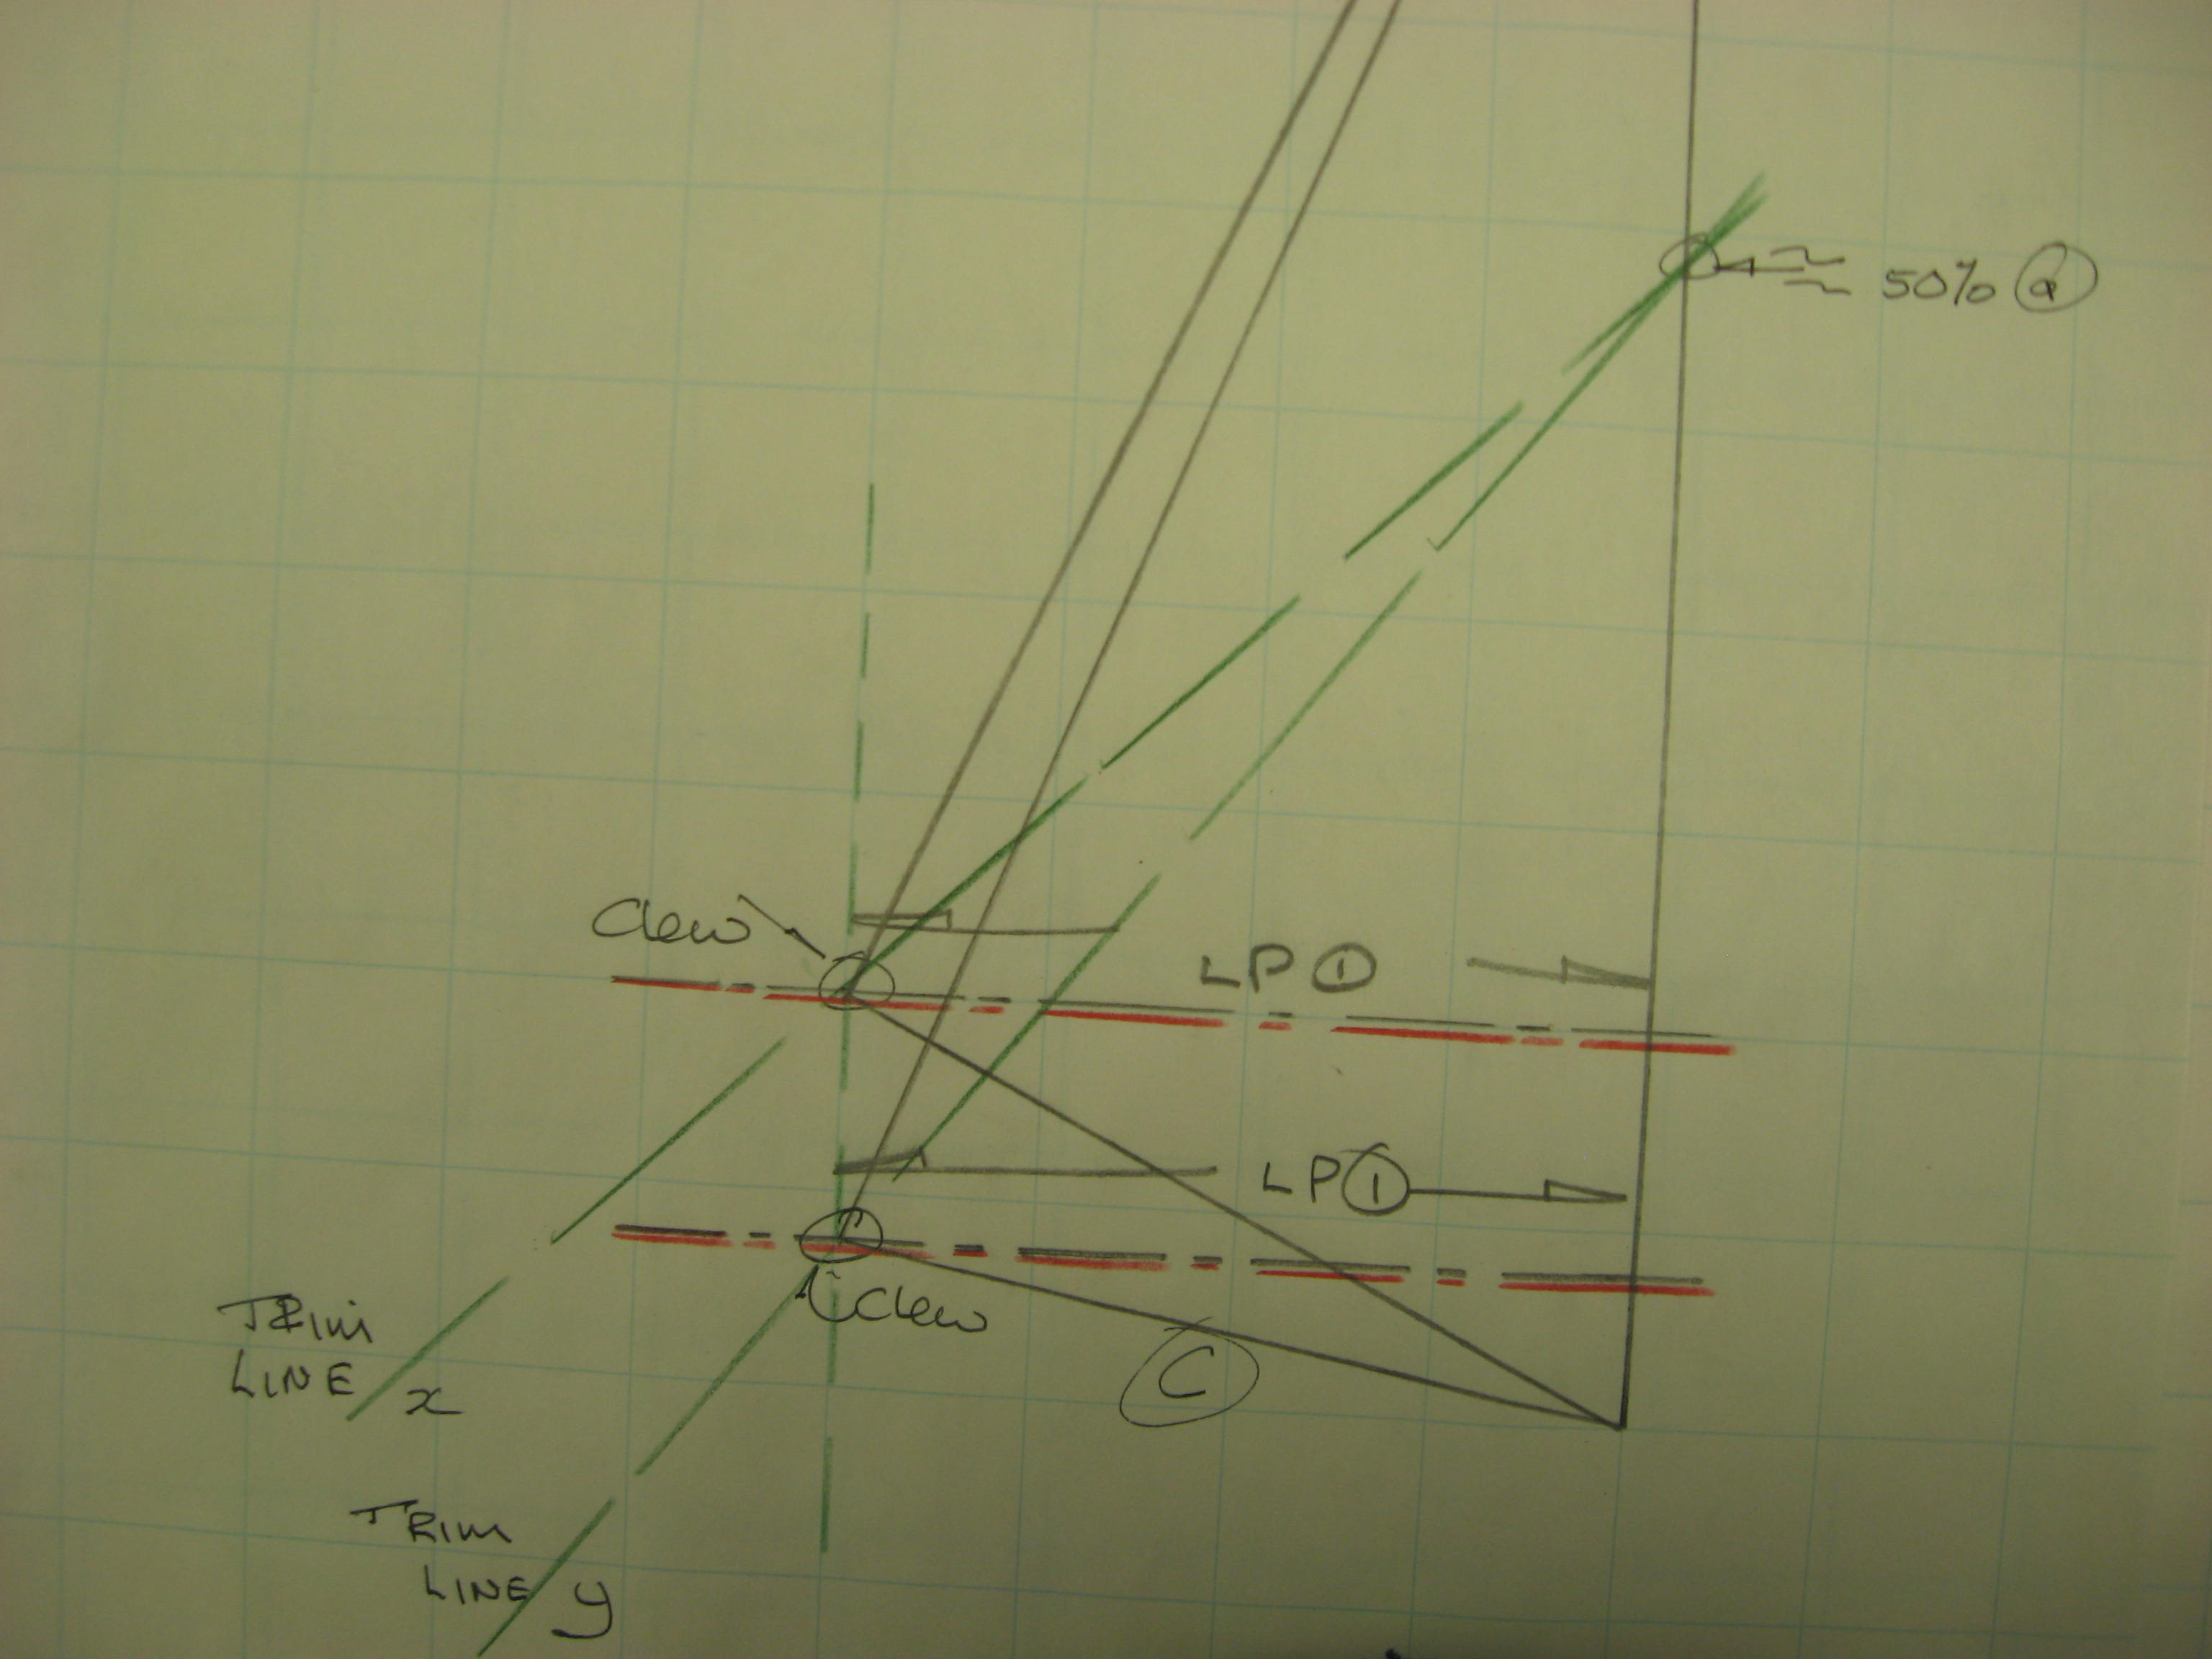 The clew height is a function of where the sail is proposed to sheet AND the LP for the sail. And these are a  function of the purpose and use of the sail.